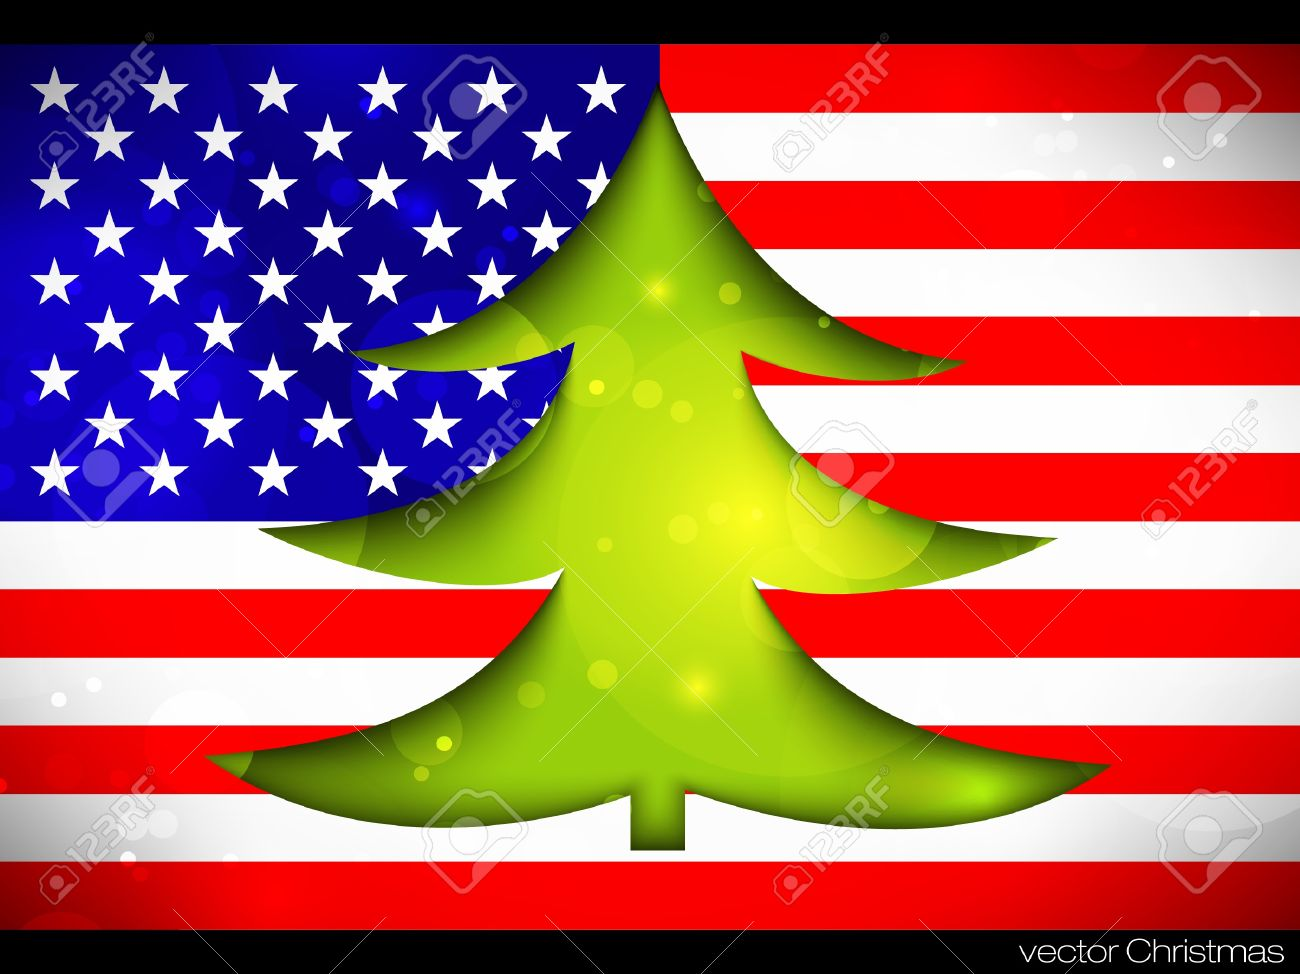 Christmas Tree On The American Flag Royalty Free Cliparts, Vectors ...